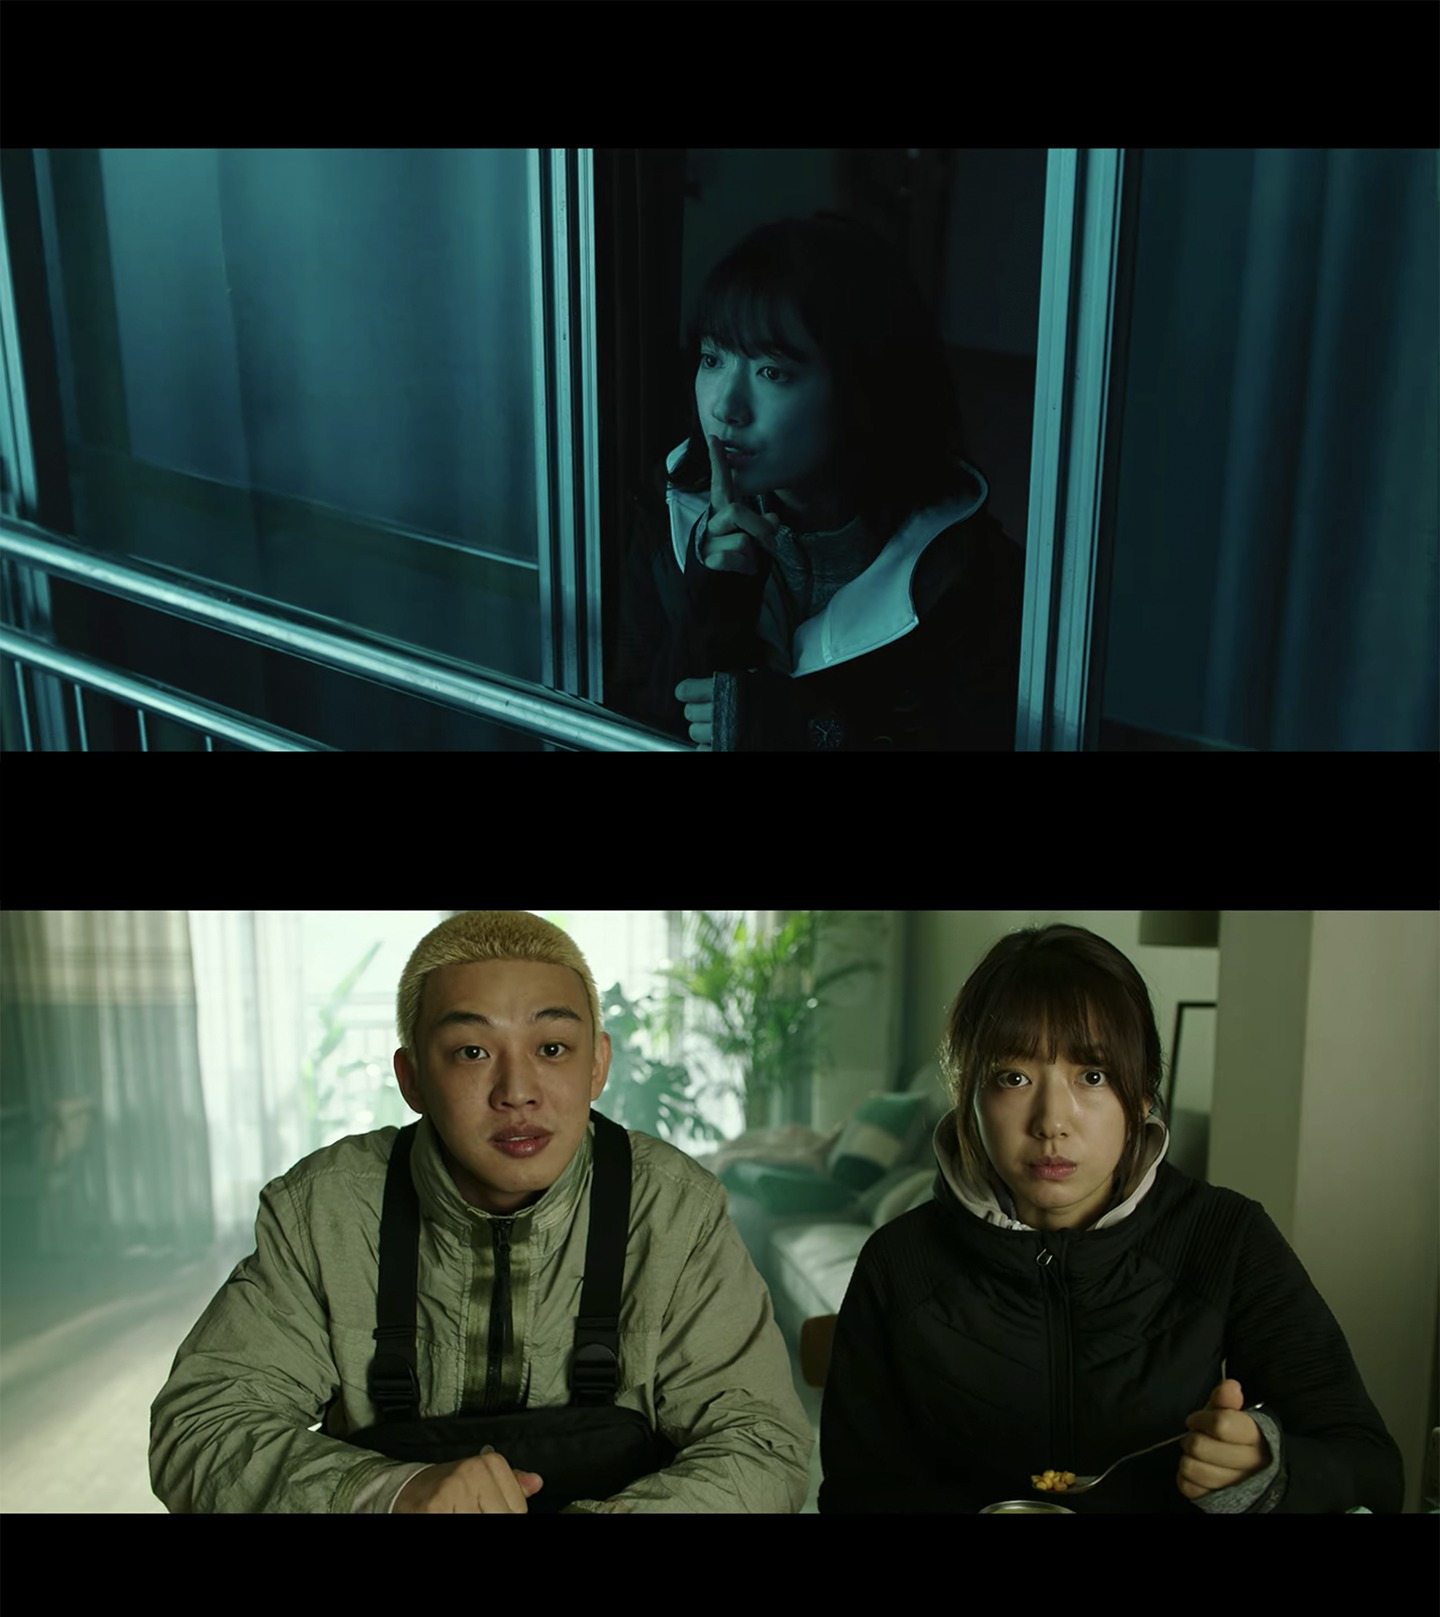 korean zombie movie #alive showing two survivors, yoo ah-in and park shin-hye